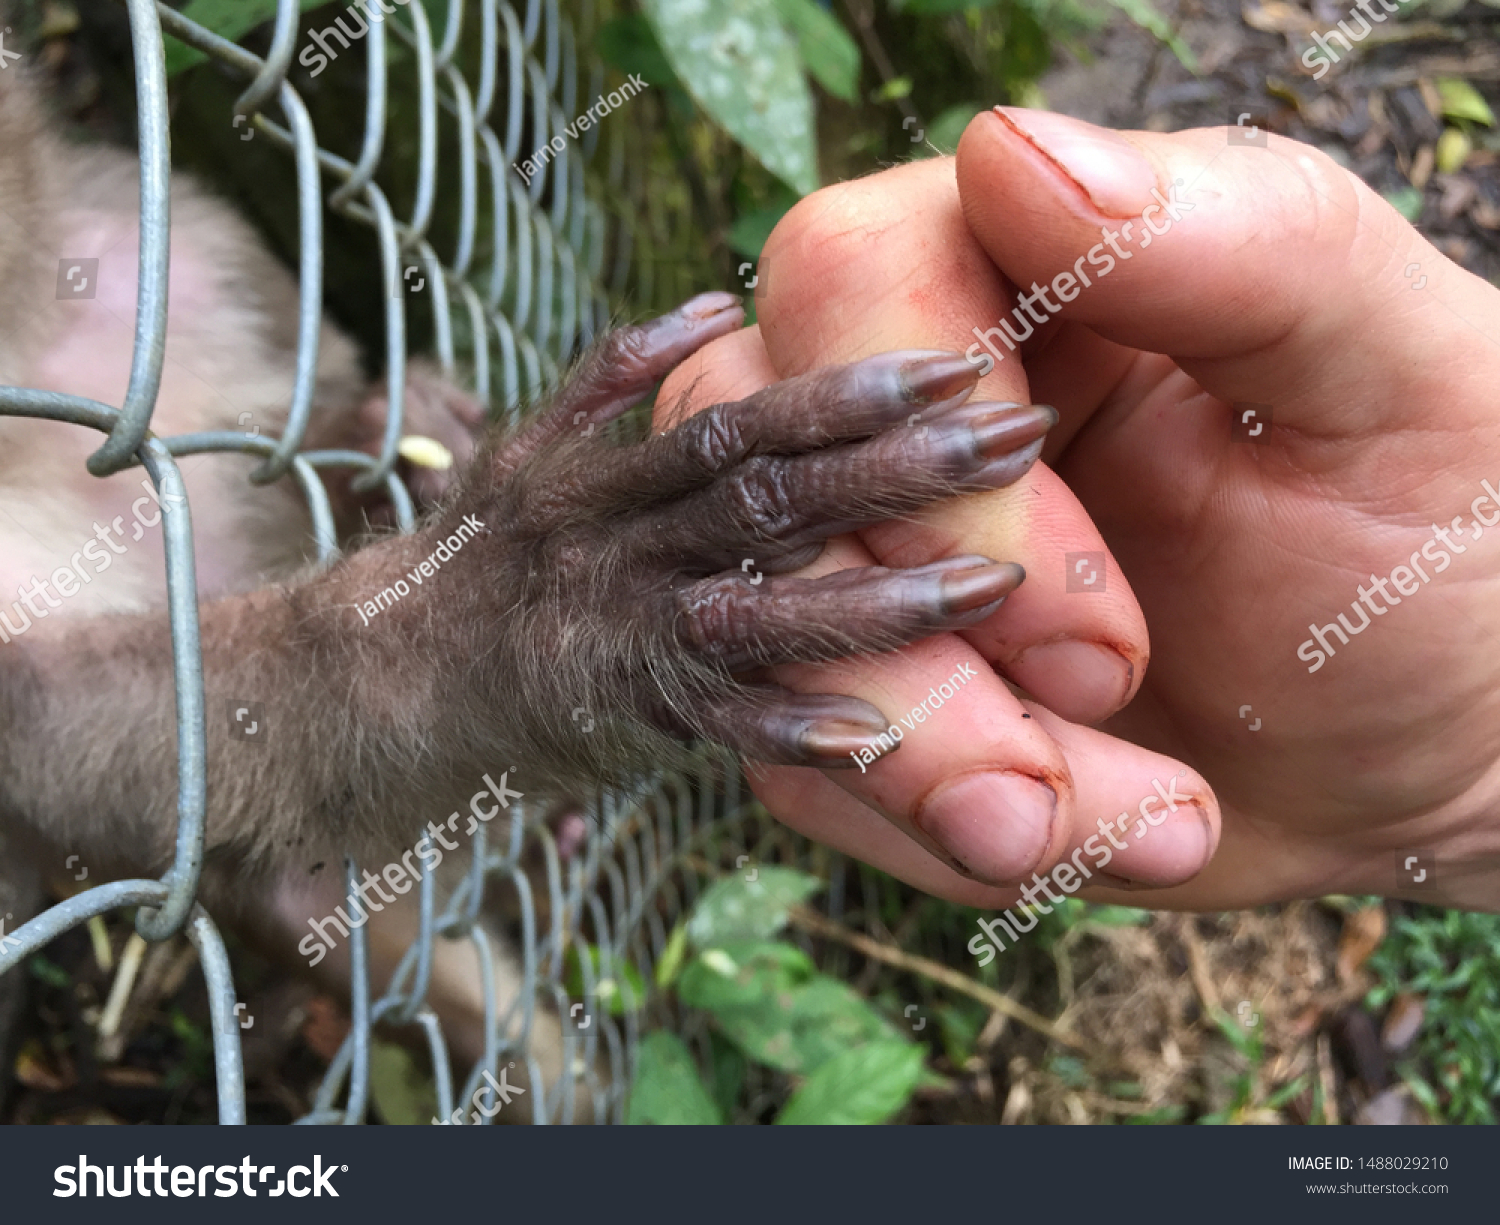 stock-photo-a-caged-monkey-giving-her-ha